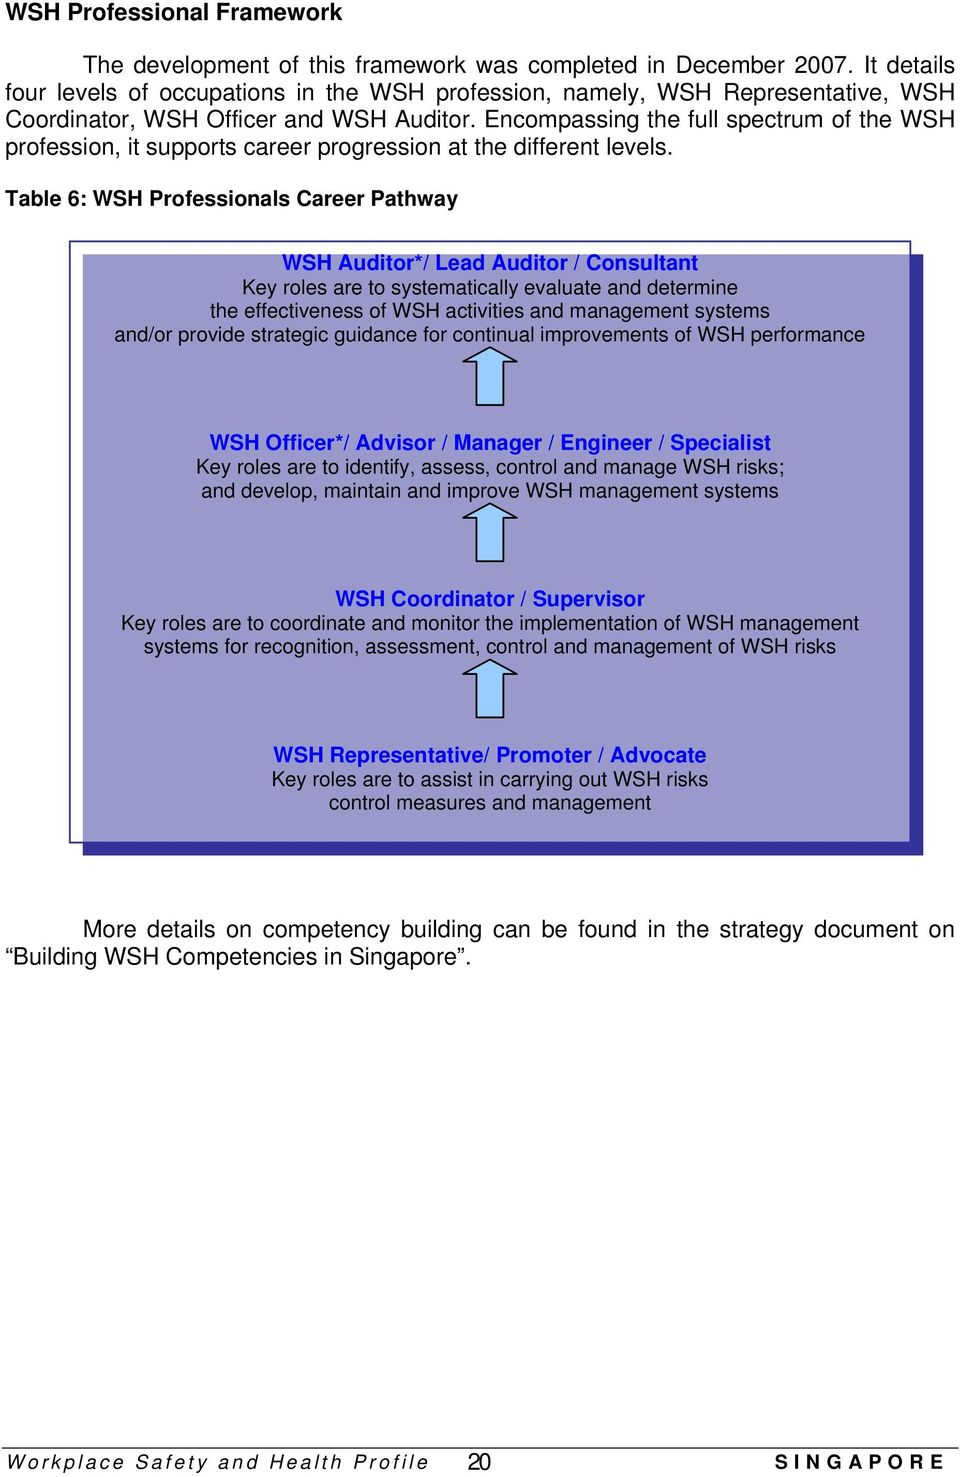 Encompassing the full spectrum of the WSH profession, it supports career progression at the different levels.